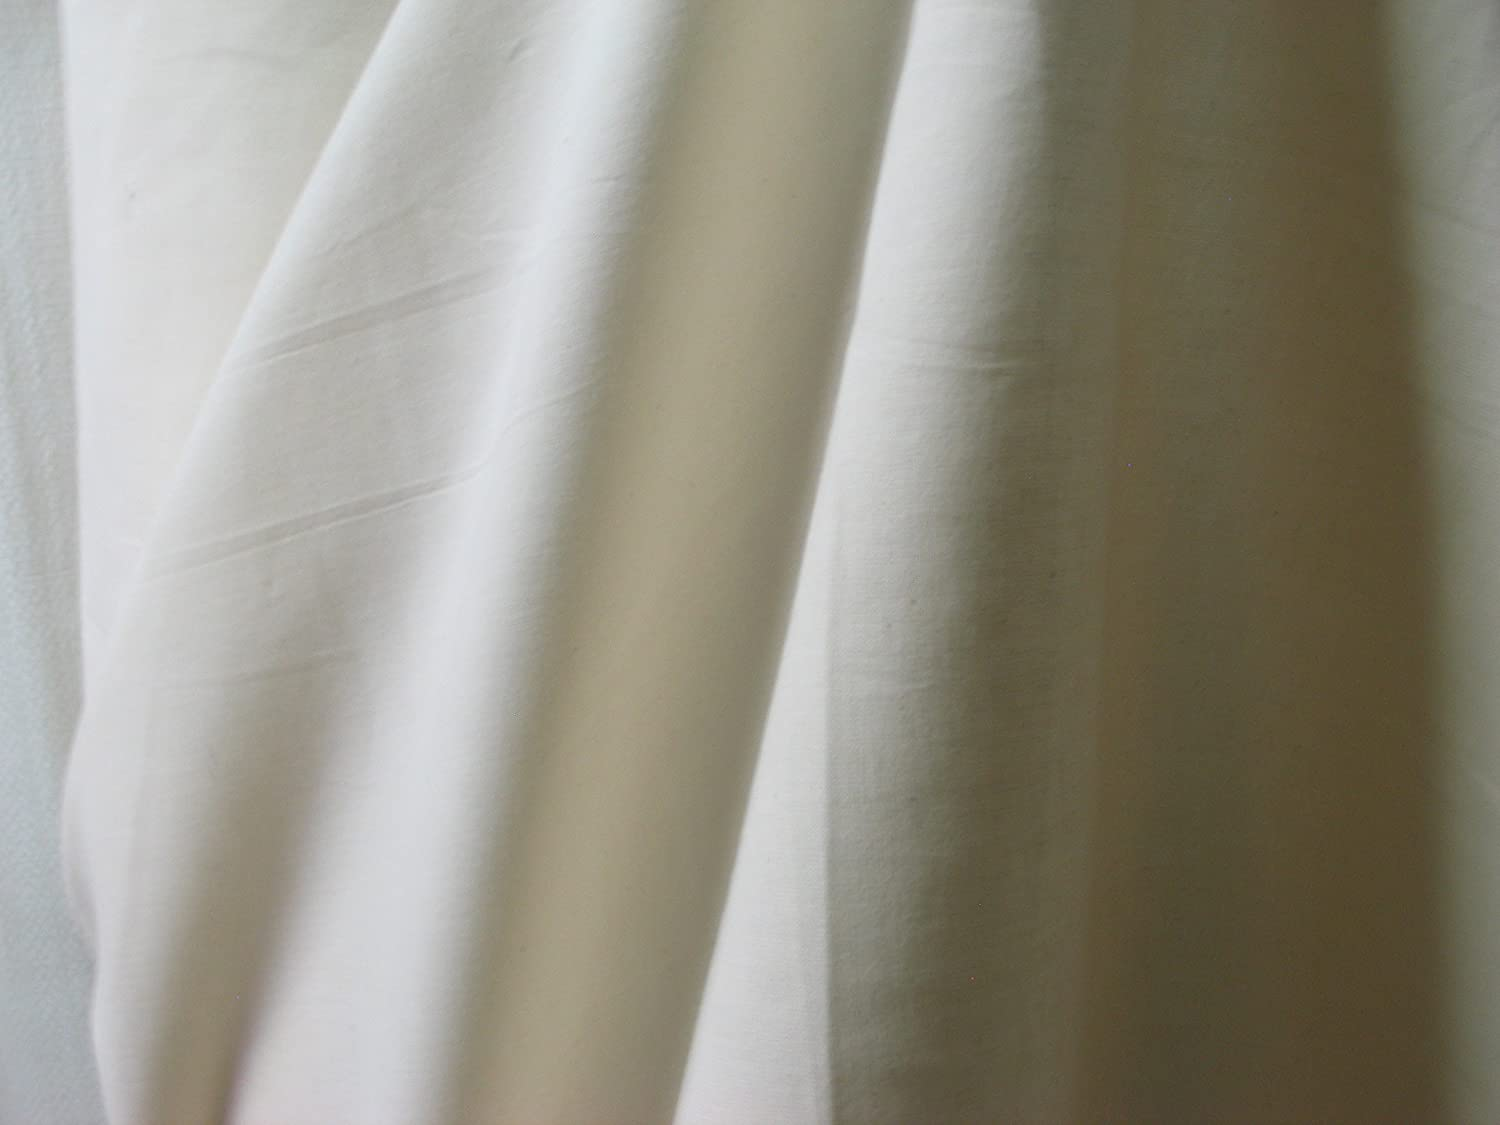 8862a5918473 Amazon.com  Amy Butler 100% Cotton Muslin Natural Fabric by The Yard